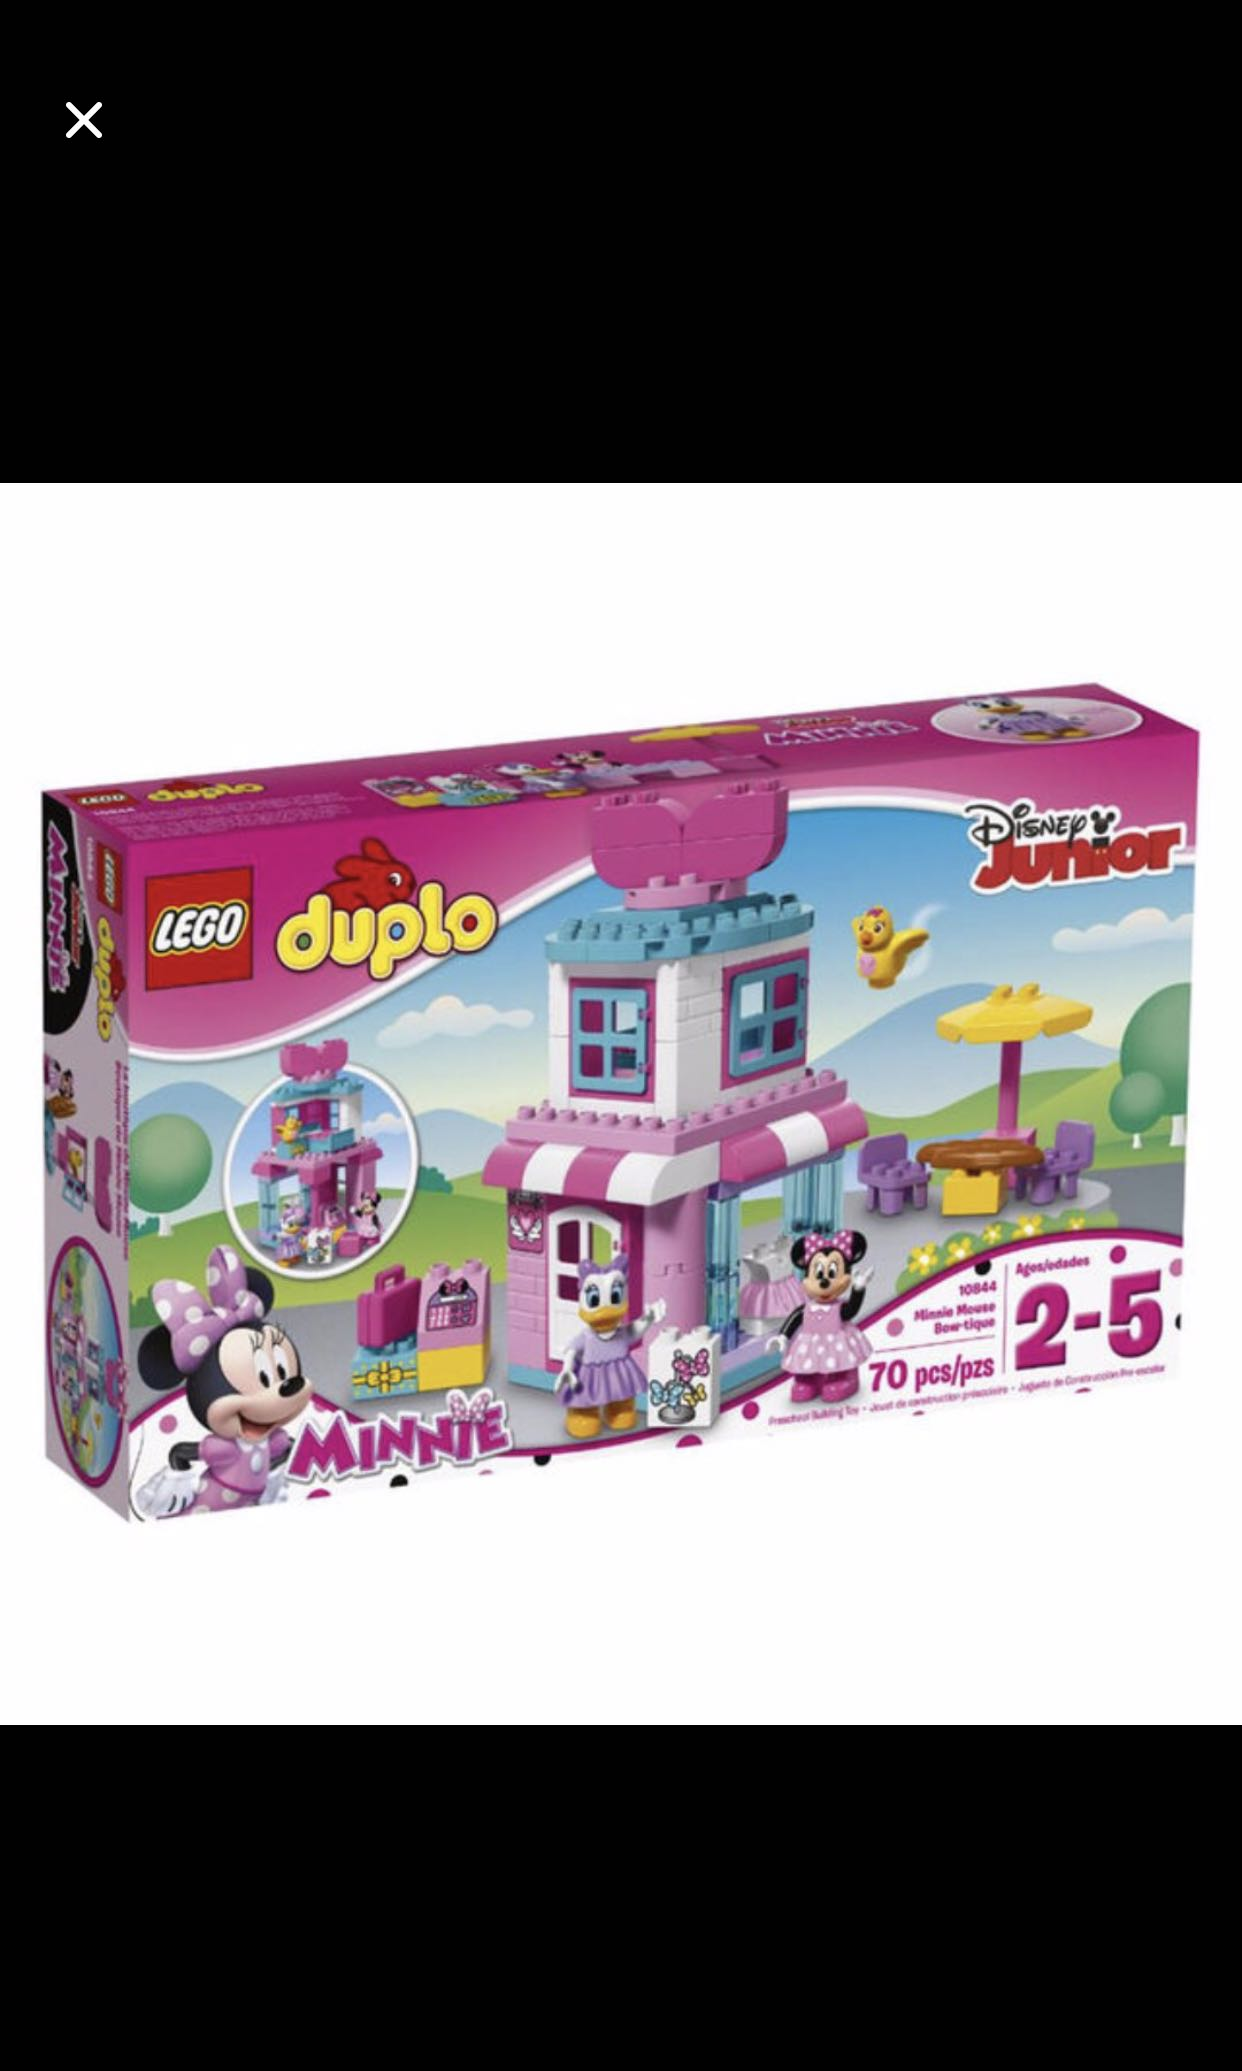 Bn Lego Duplo 10844 Minnie Mouse Boutique Toys Games Bricks